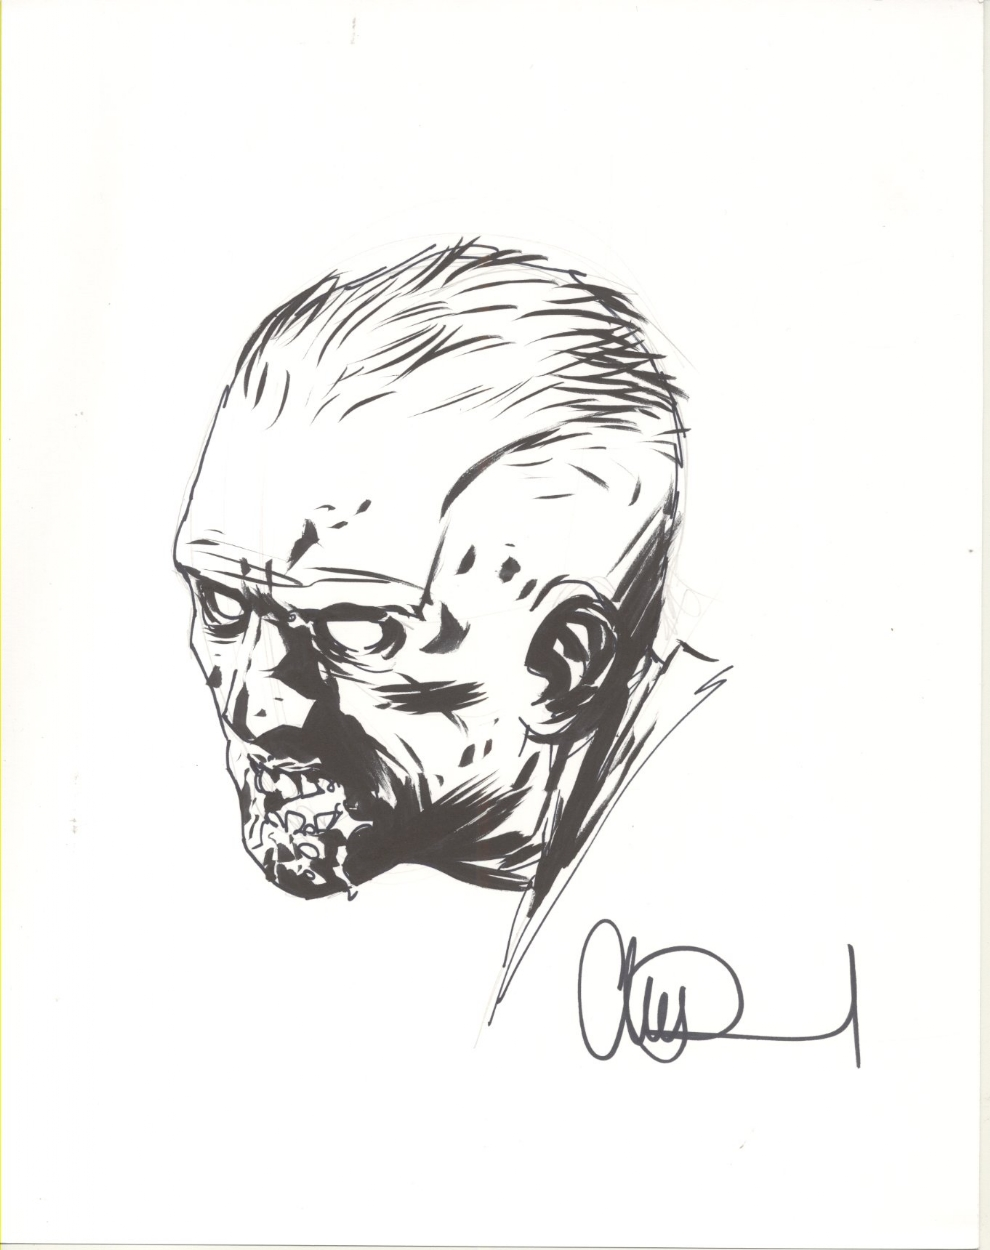 990x1250 Walking Dead Zombie Sketch, In The Nowell Brothers's Walking Dead